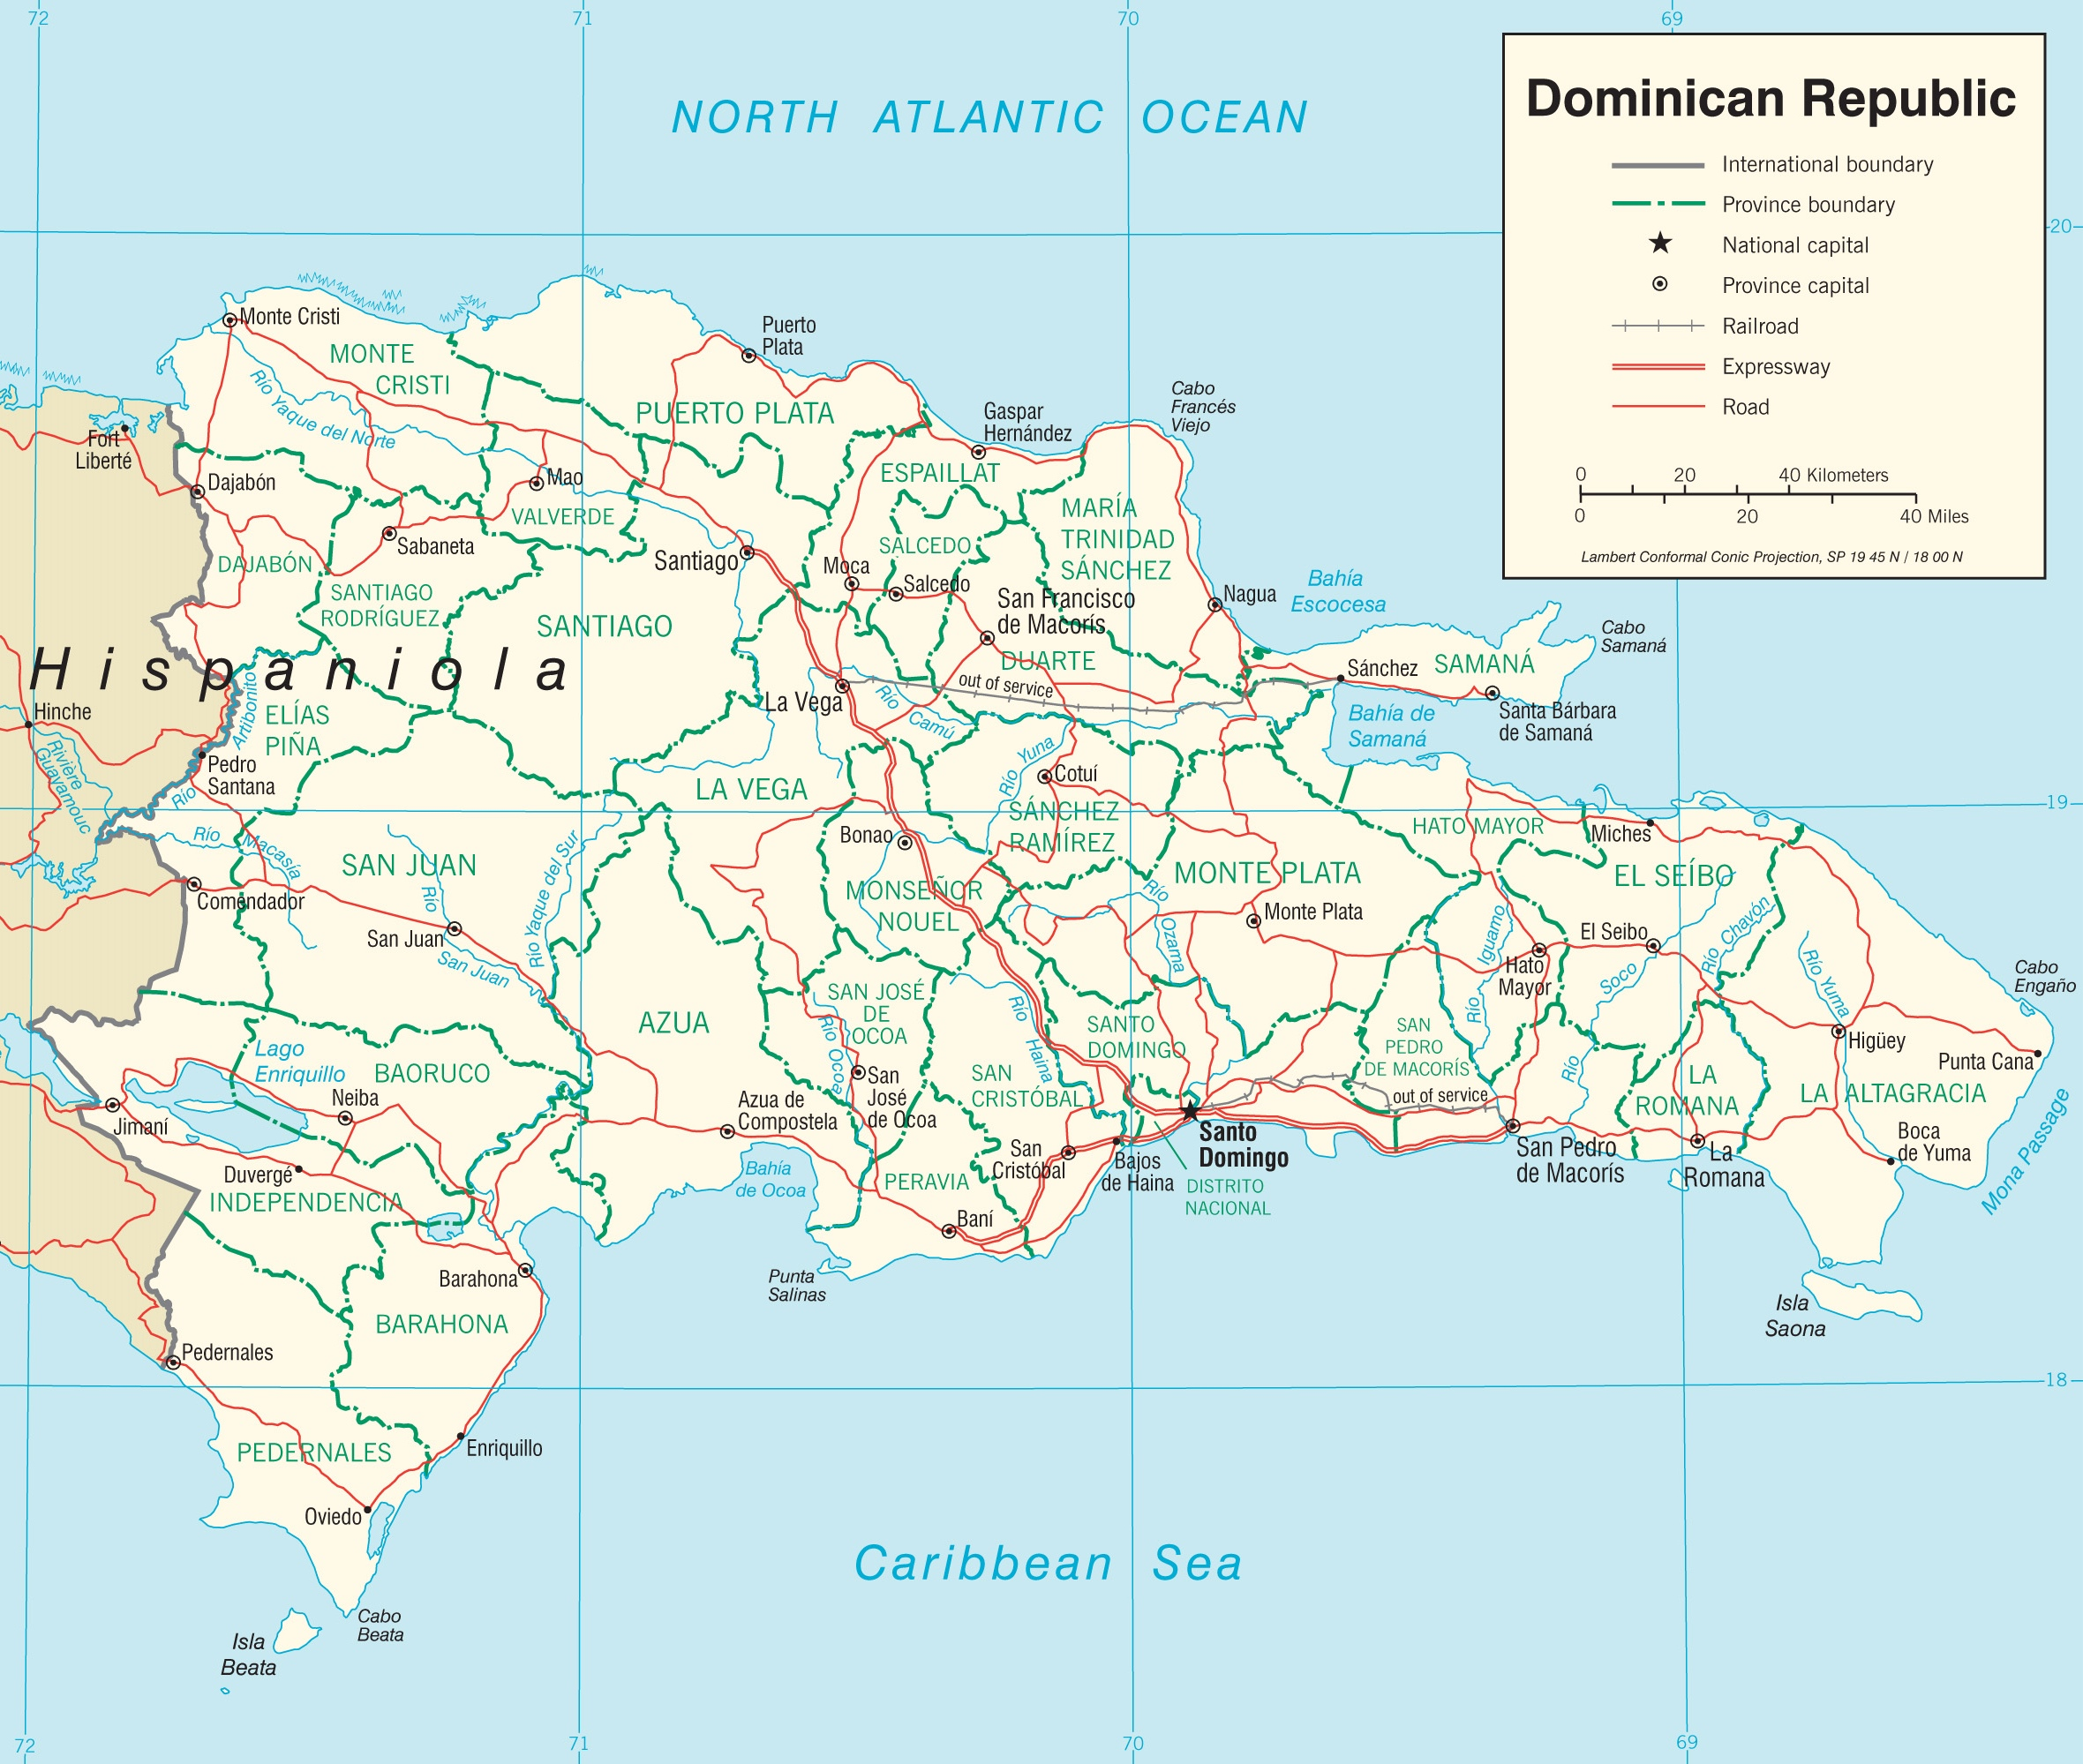 Dominican Republic road map